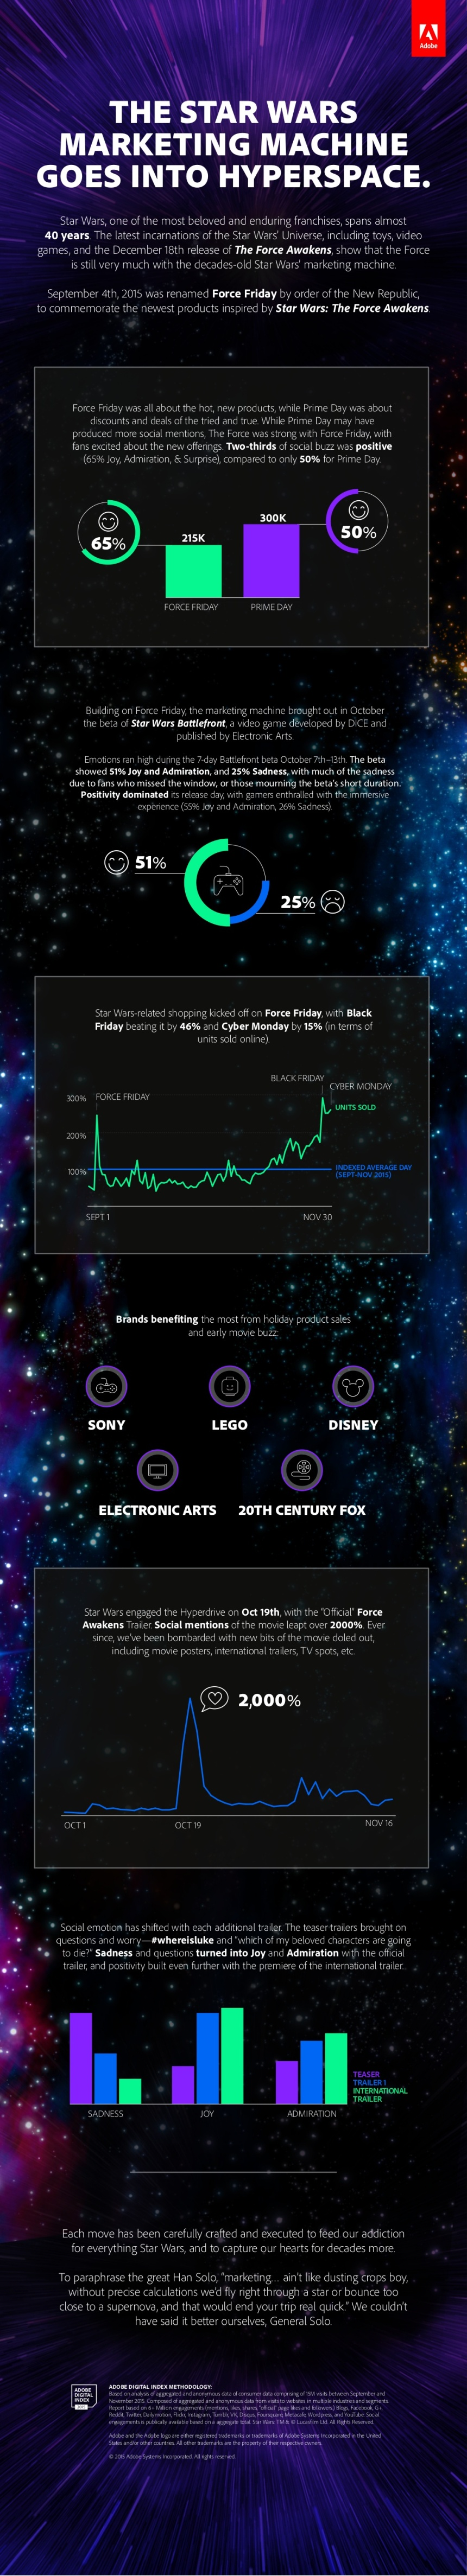 La máquina de marketing de Star Wars